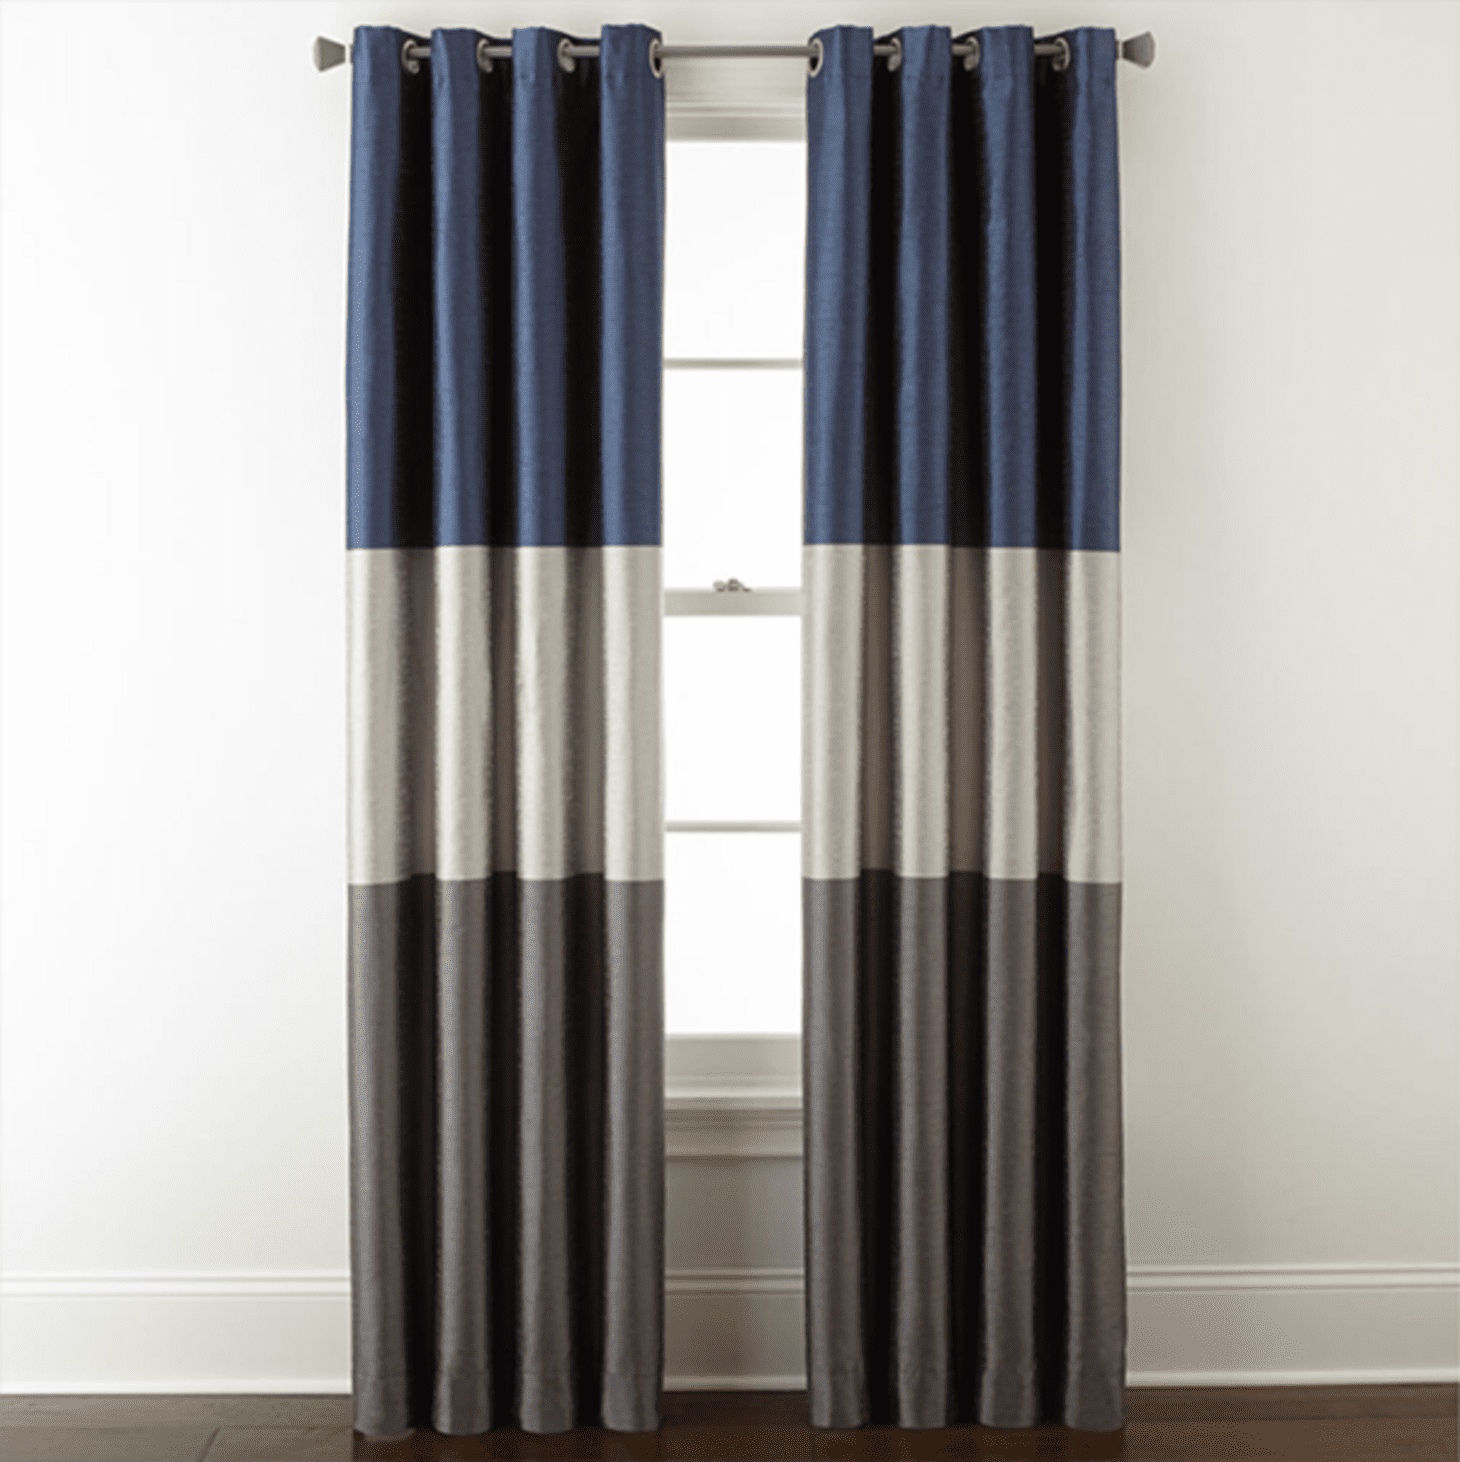 Best Insulated Blackout Curtains | Apartment Therapy Pertaining To Moroccan Style Thermal Insulated Blackout Curtain Panel Pairs (View 20 of 20)